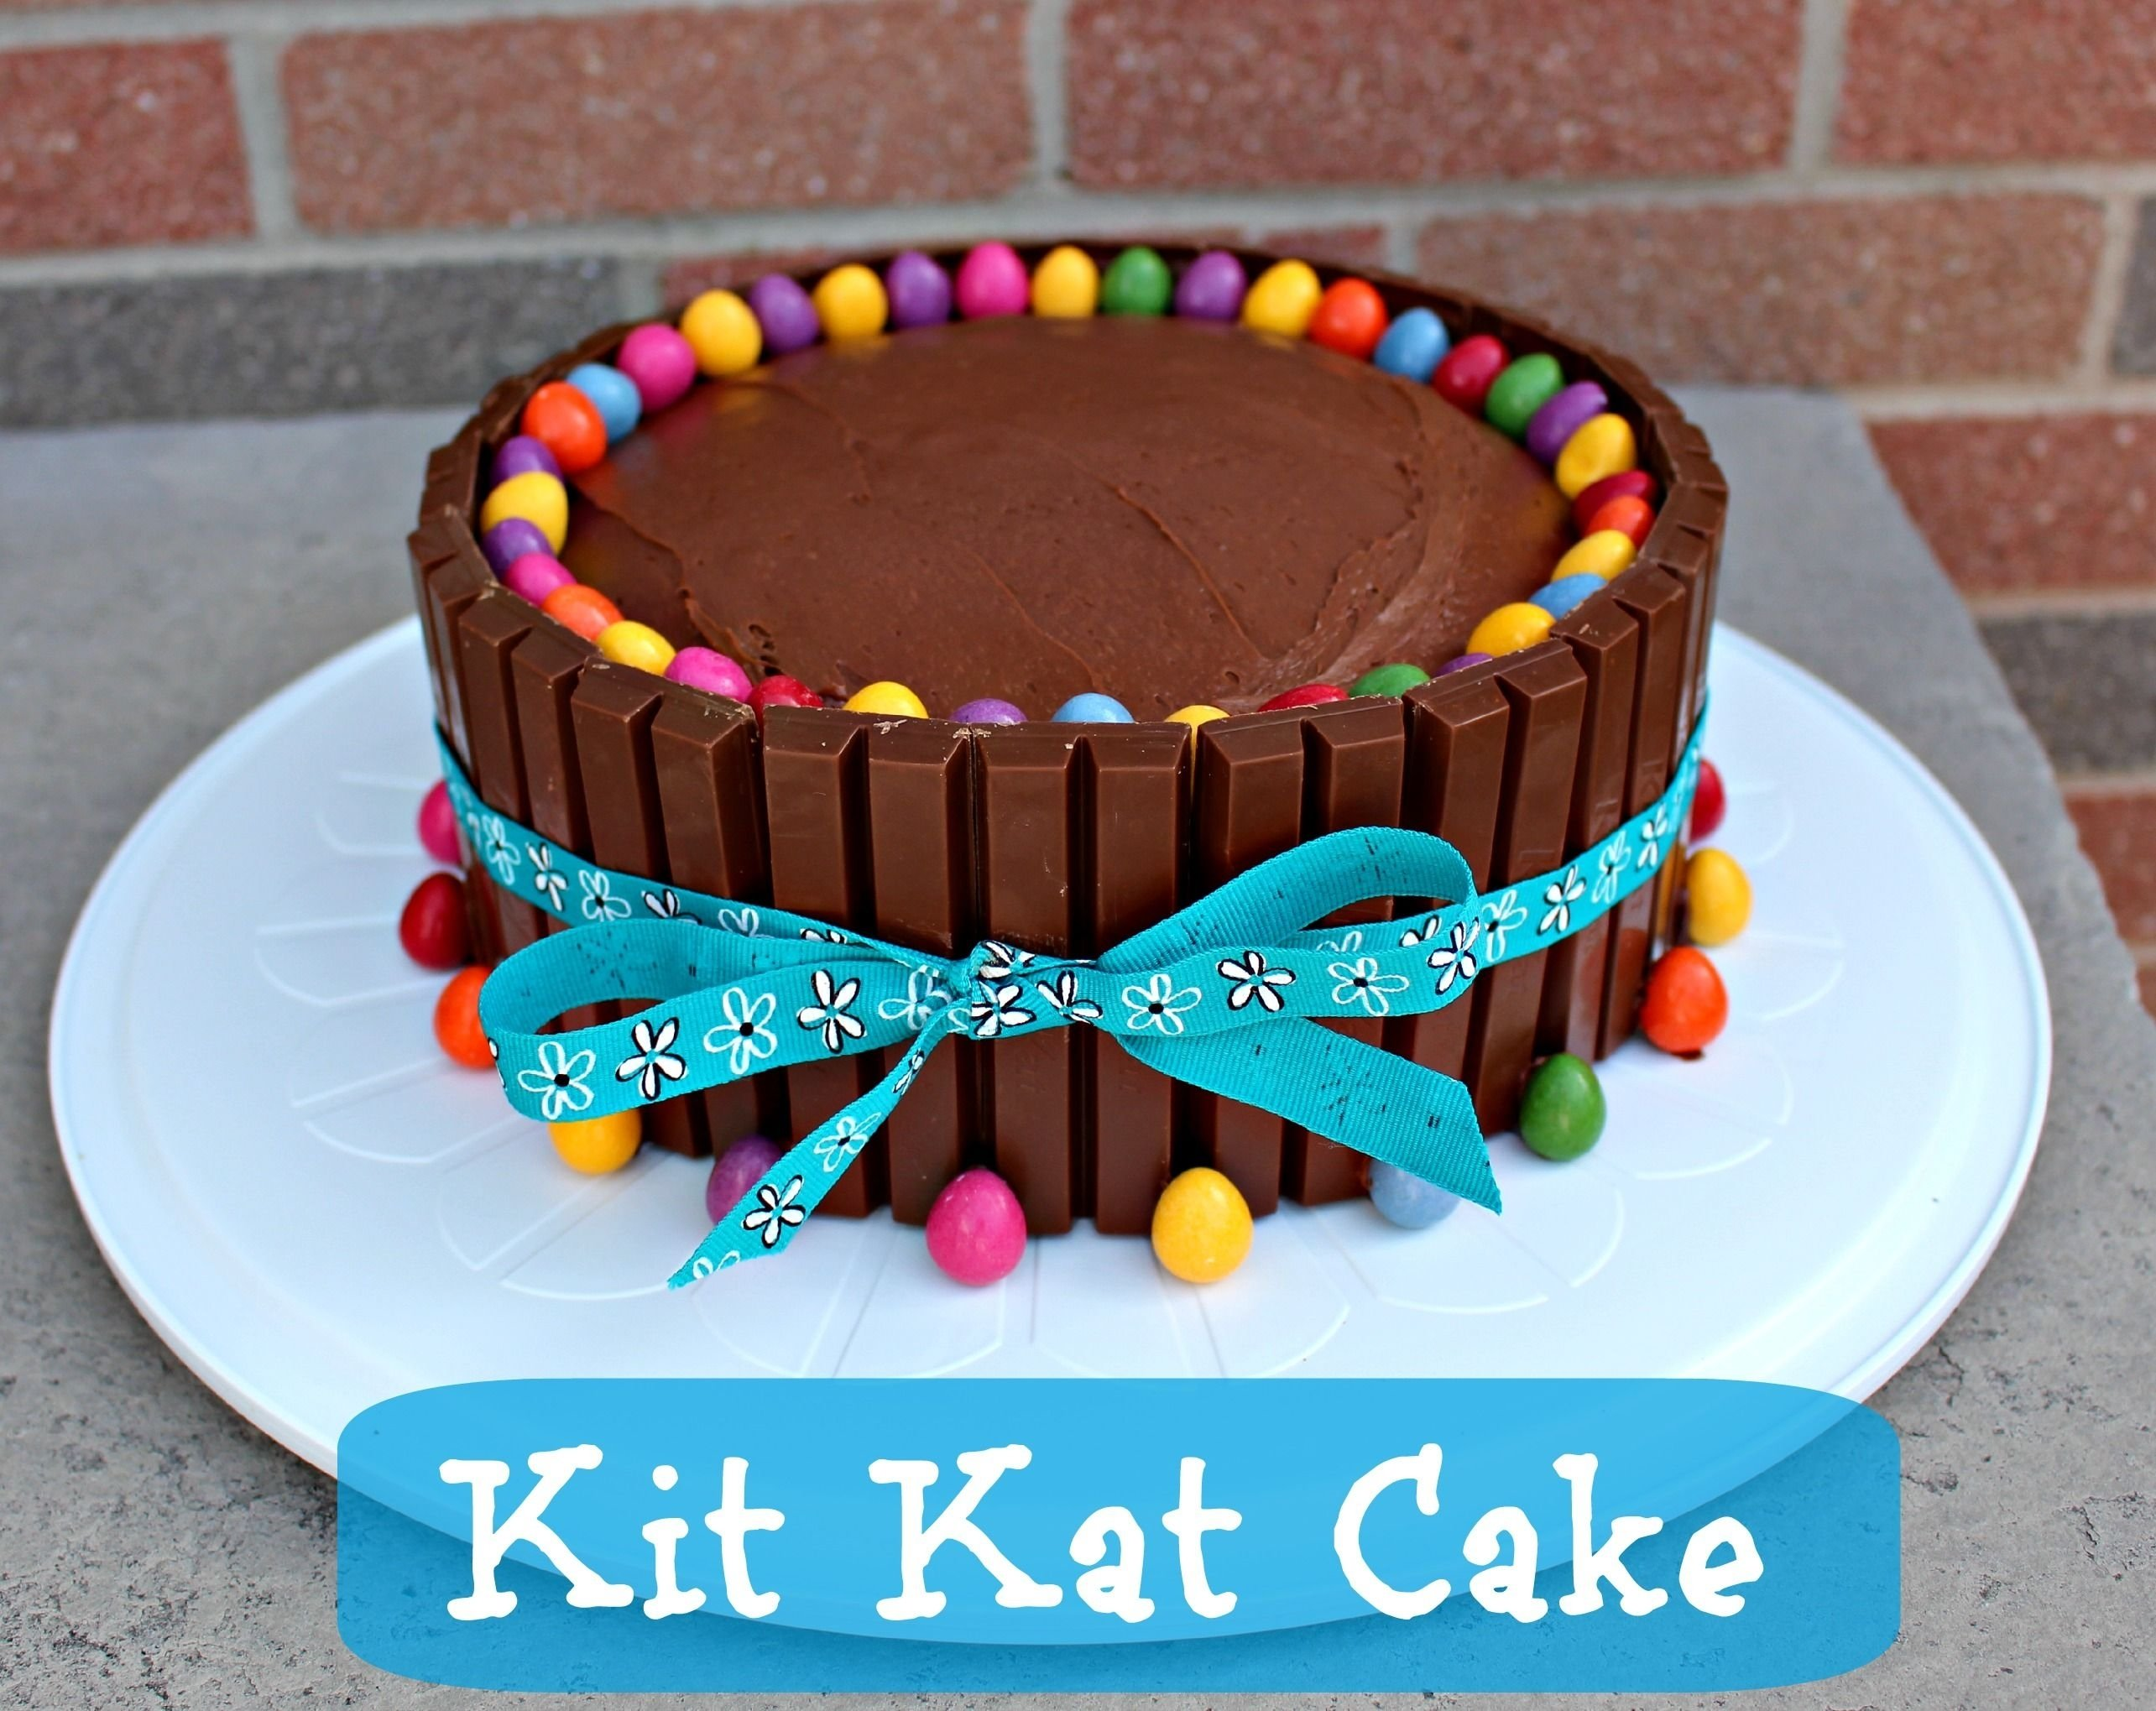 10 Best Simple Birthday Cake Decorating Ideas kit kat cake recipe cake birthday birthday cakes and teen 2 2020